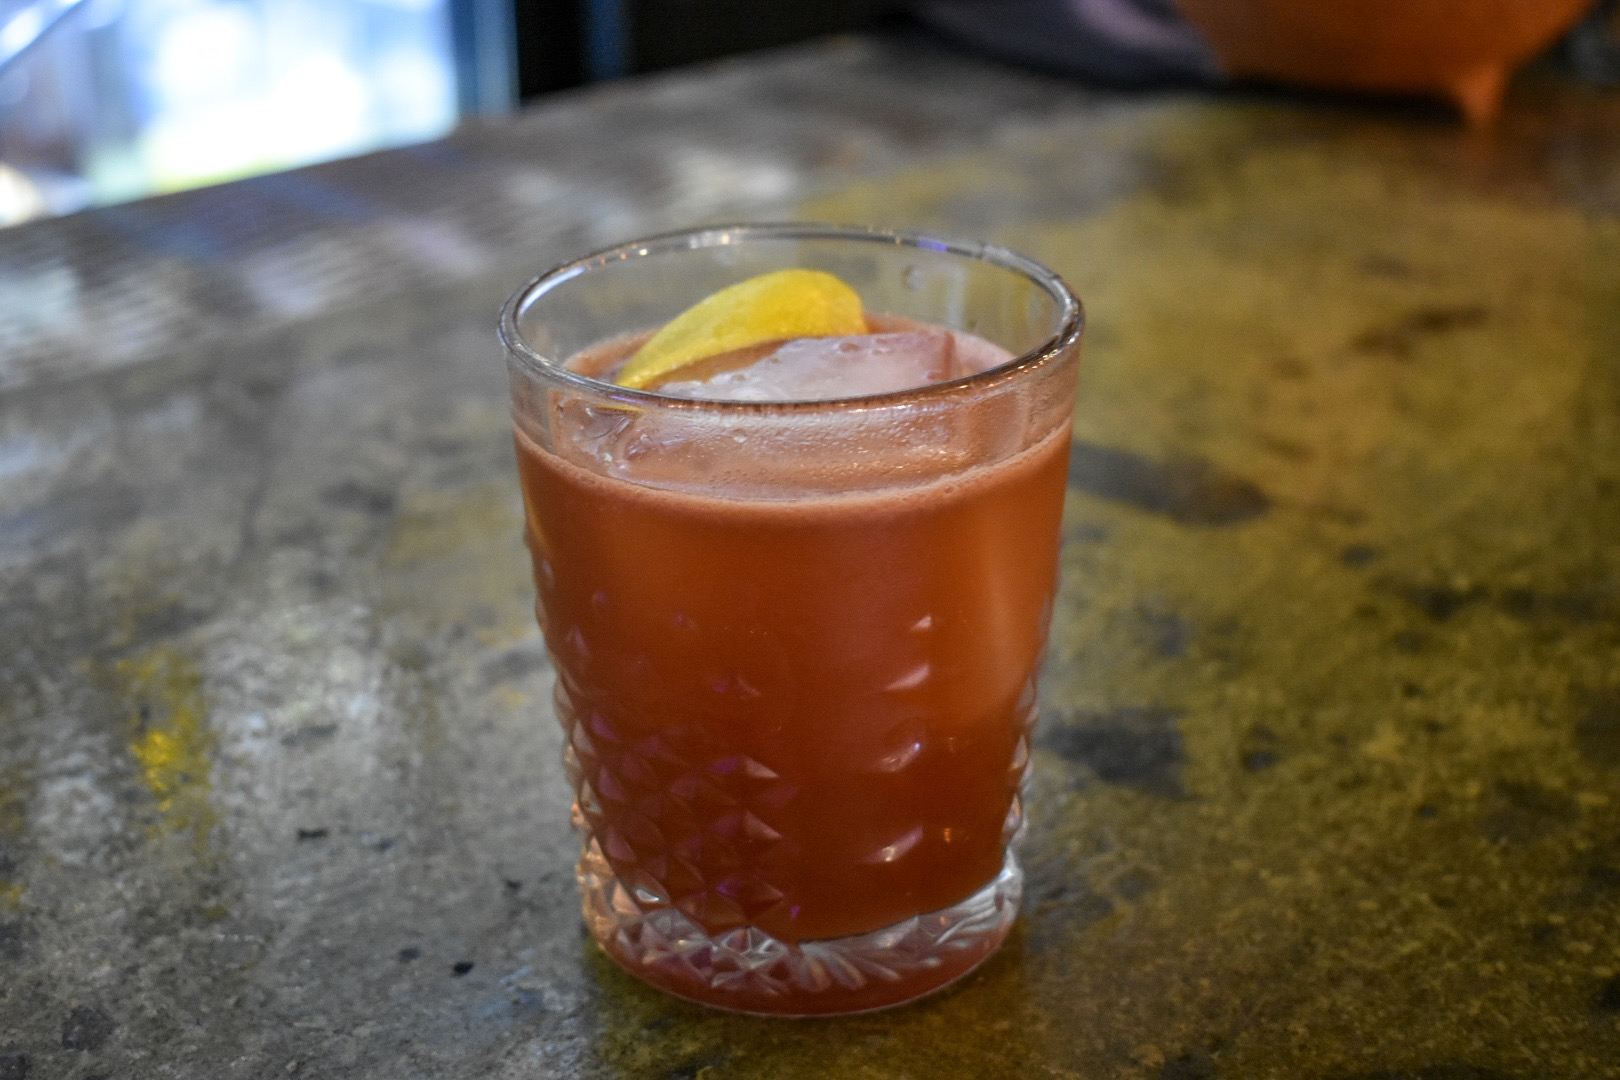 mexicillian handcrafted cocktial urbana anaheim bloody mary obsessed anaheim packing disctict .jpg